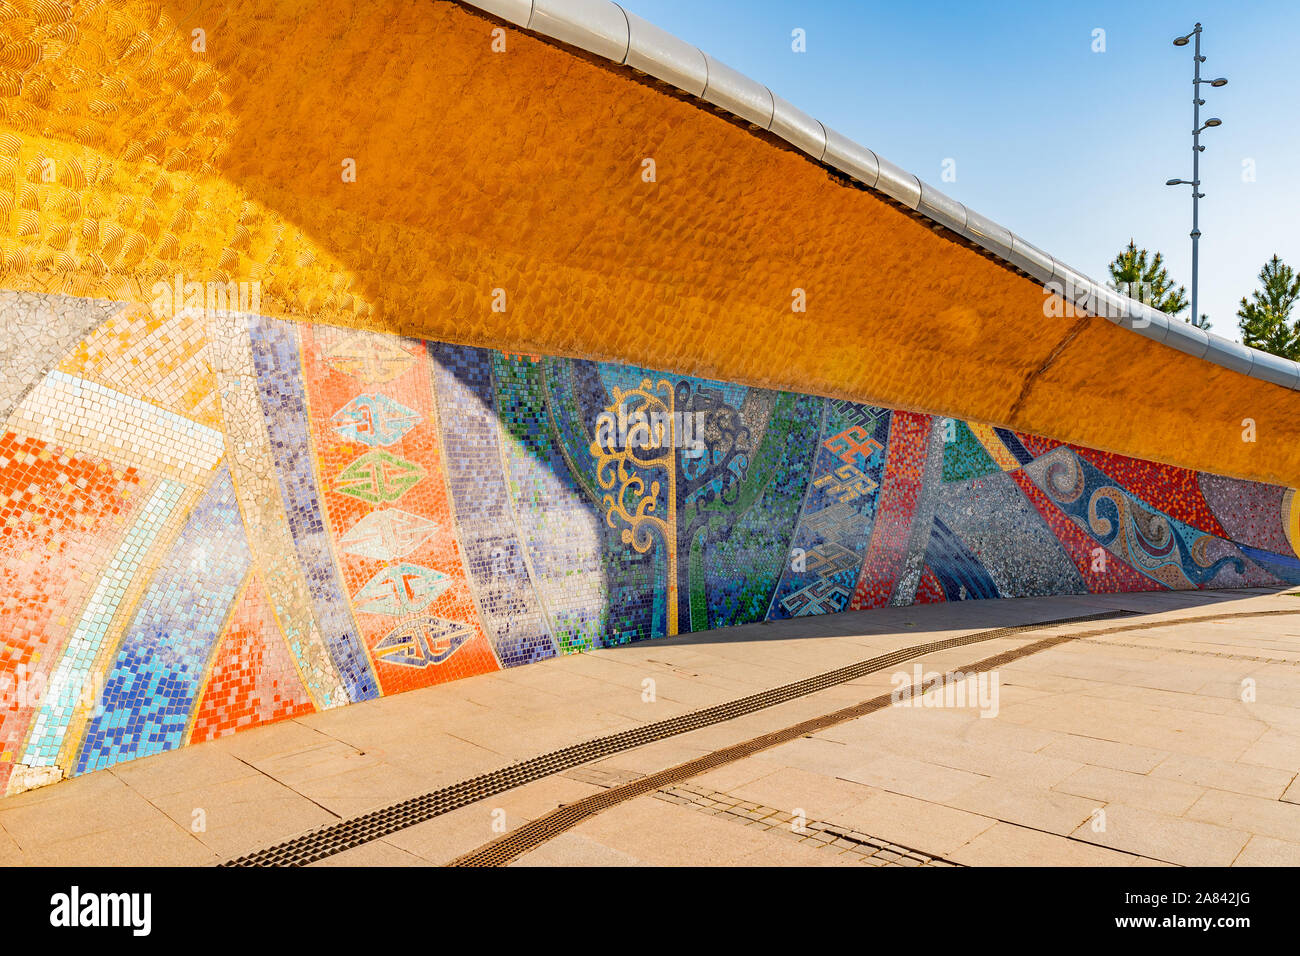 Nur-Sultan Astana Central City Tsentralnyy Gorodskoy Park View of Mosaic Art on a Sunny Blue Sky Day Stock Photo